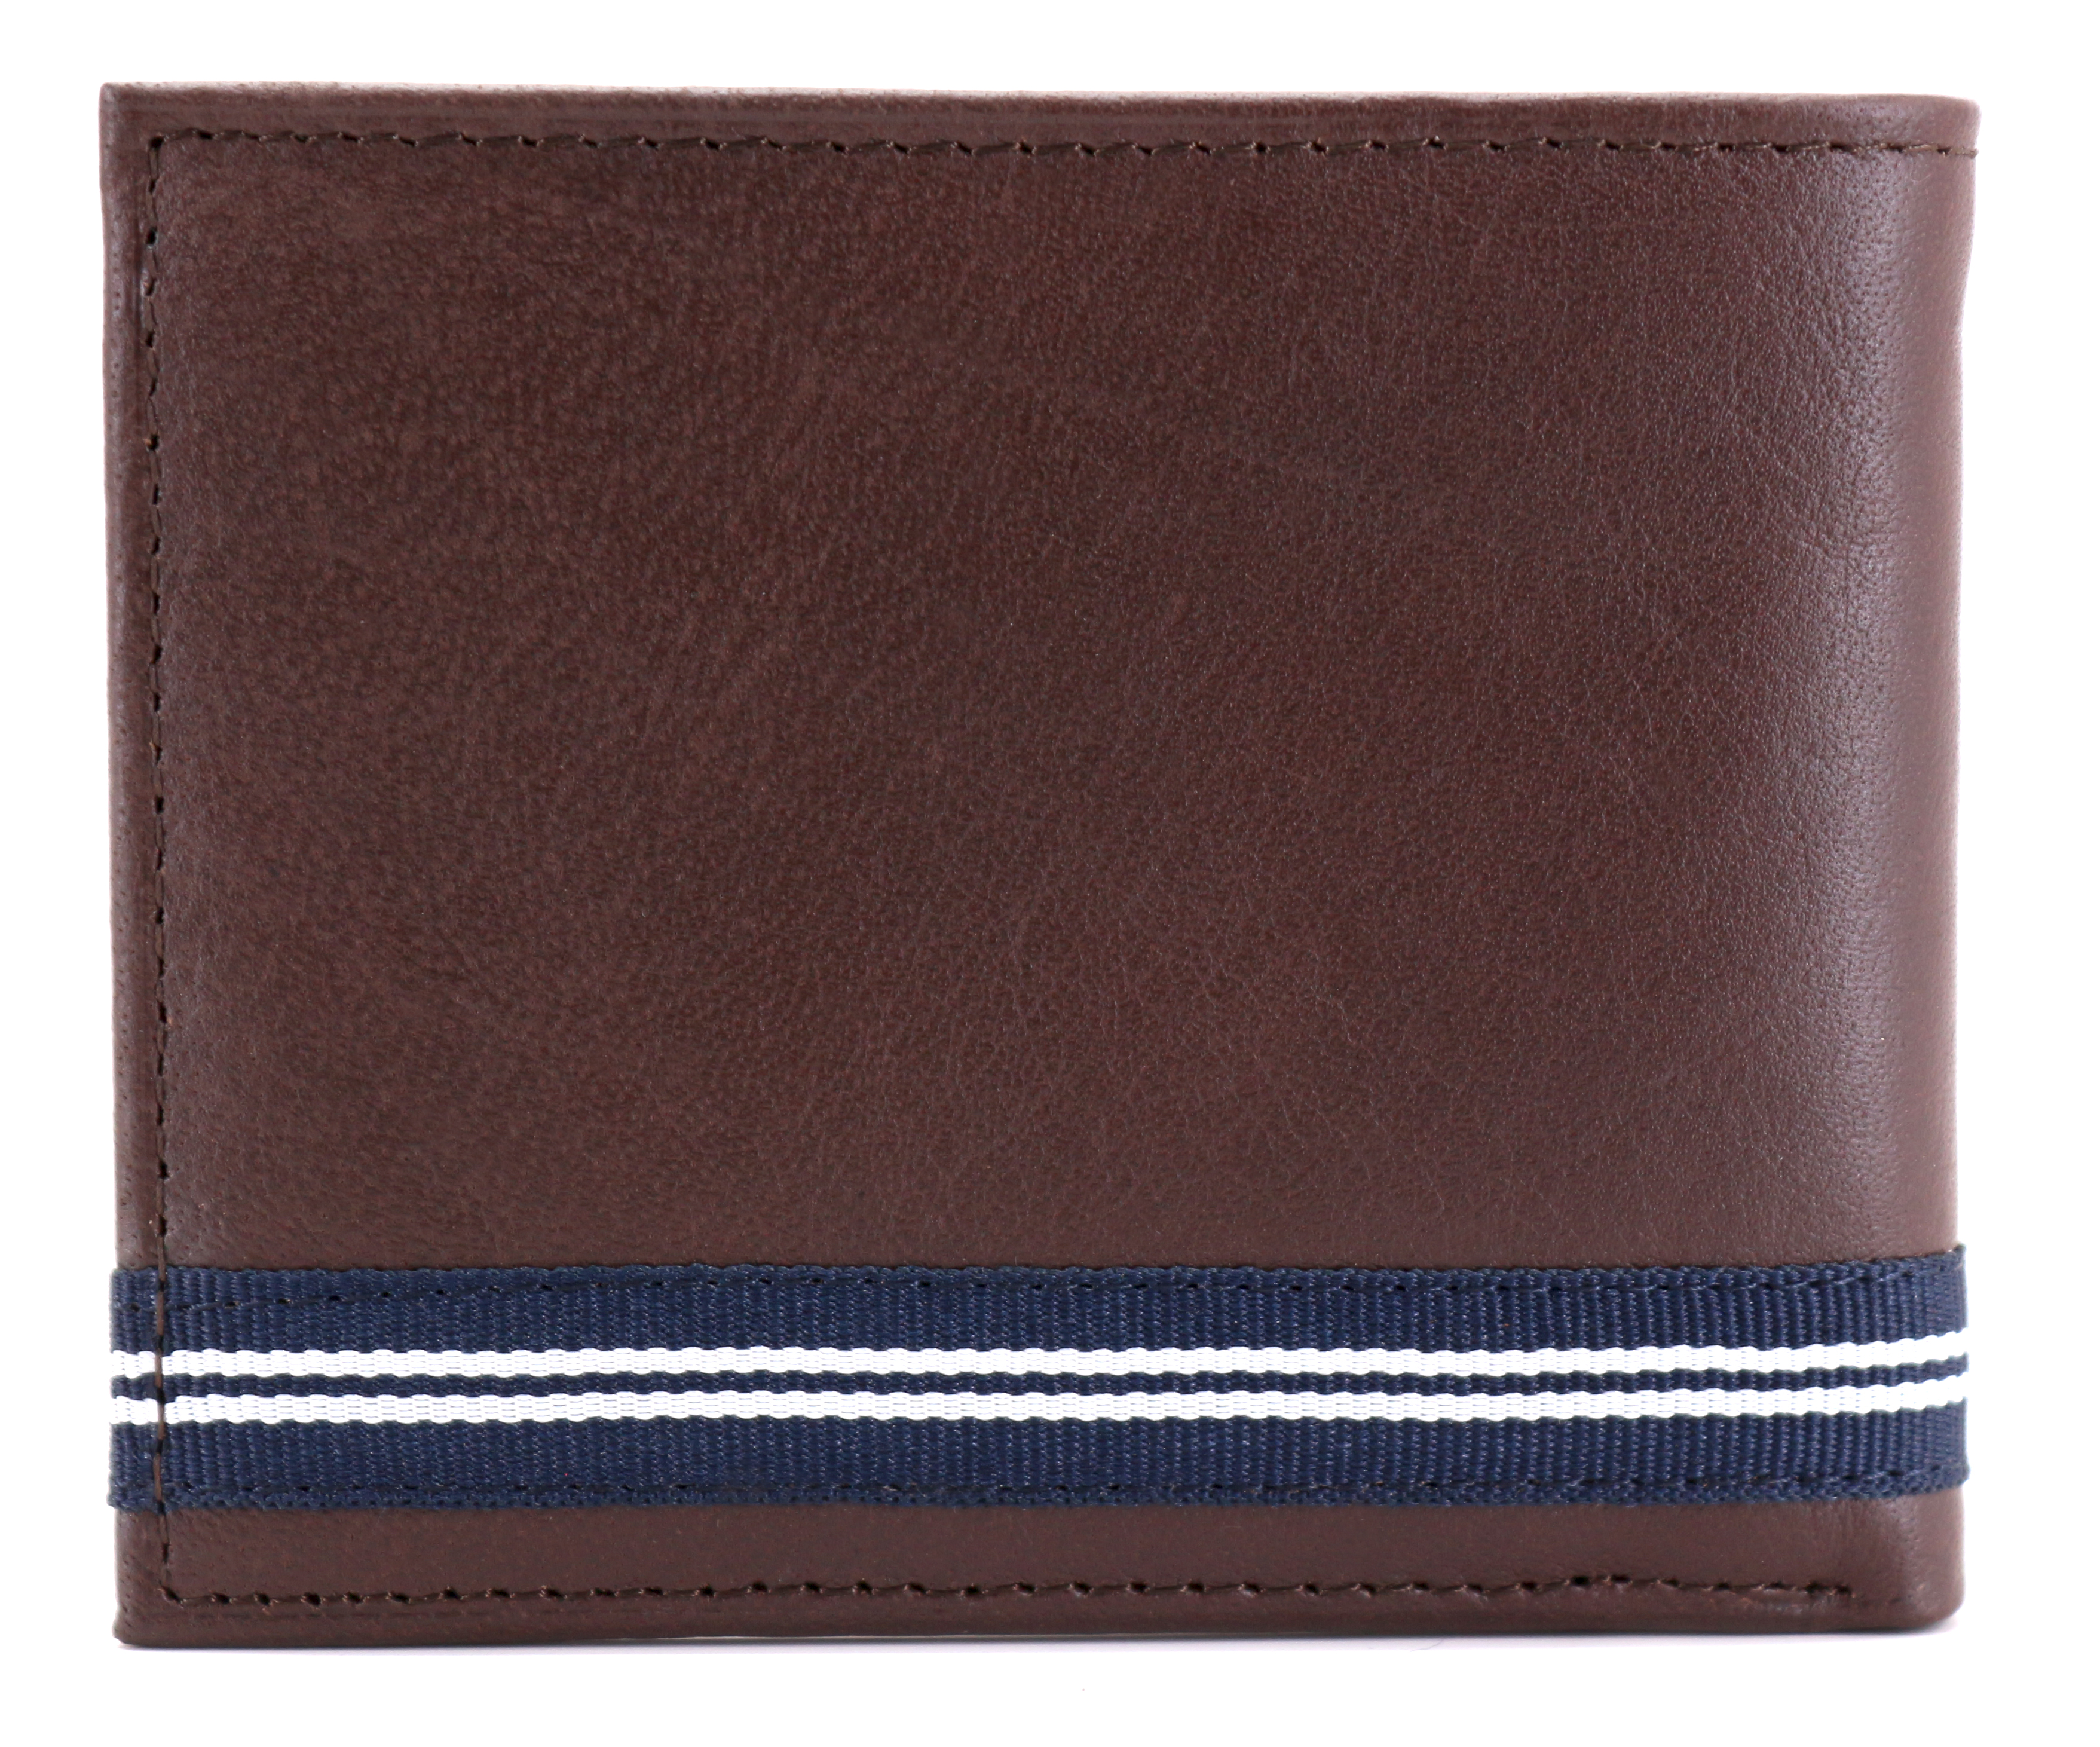 Nautica-Men-039-s-Genuine-Leather-Credit-Card-ID-Double-Billfold-Passcase-Wallet thumbnail 13